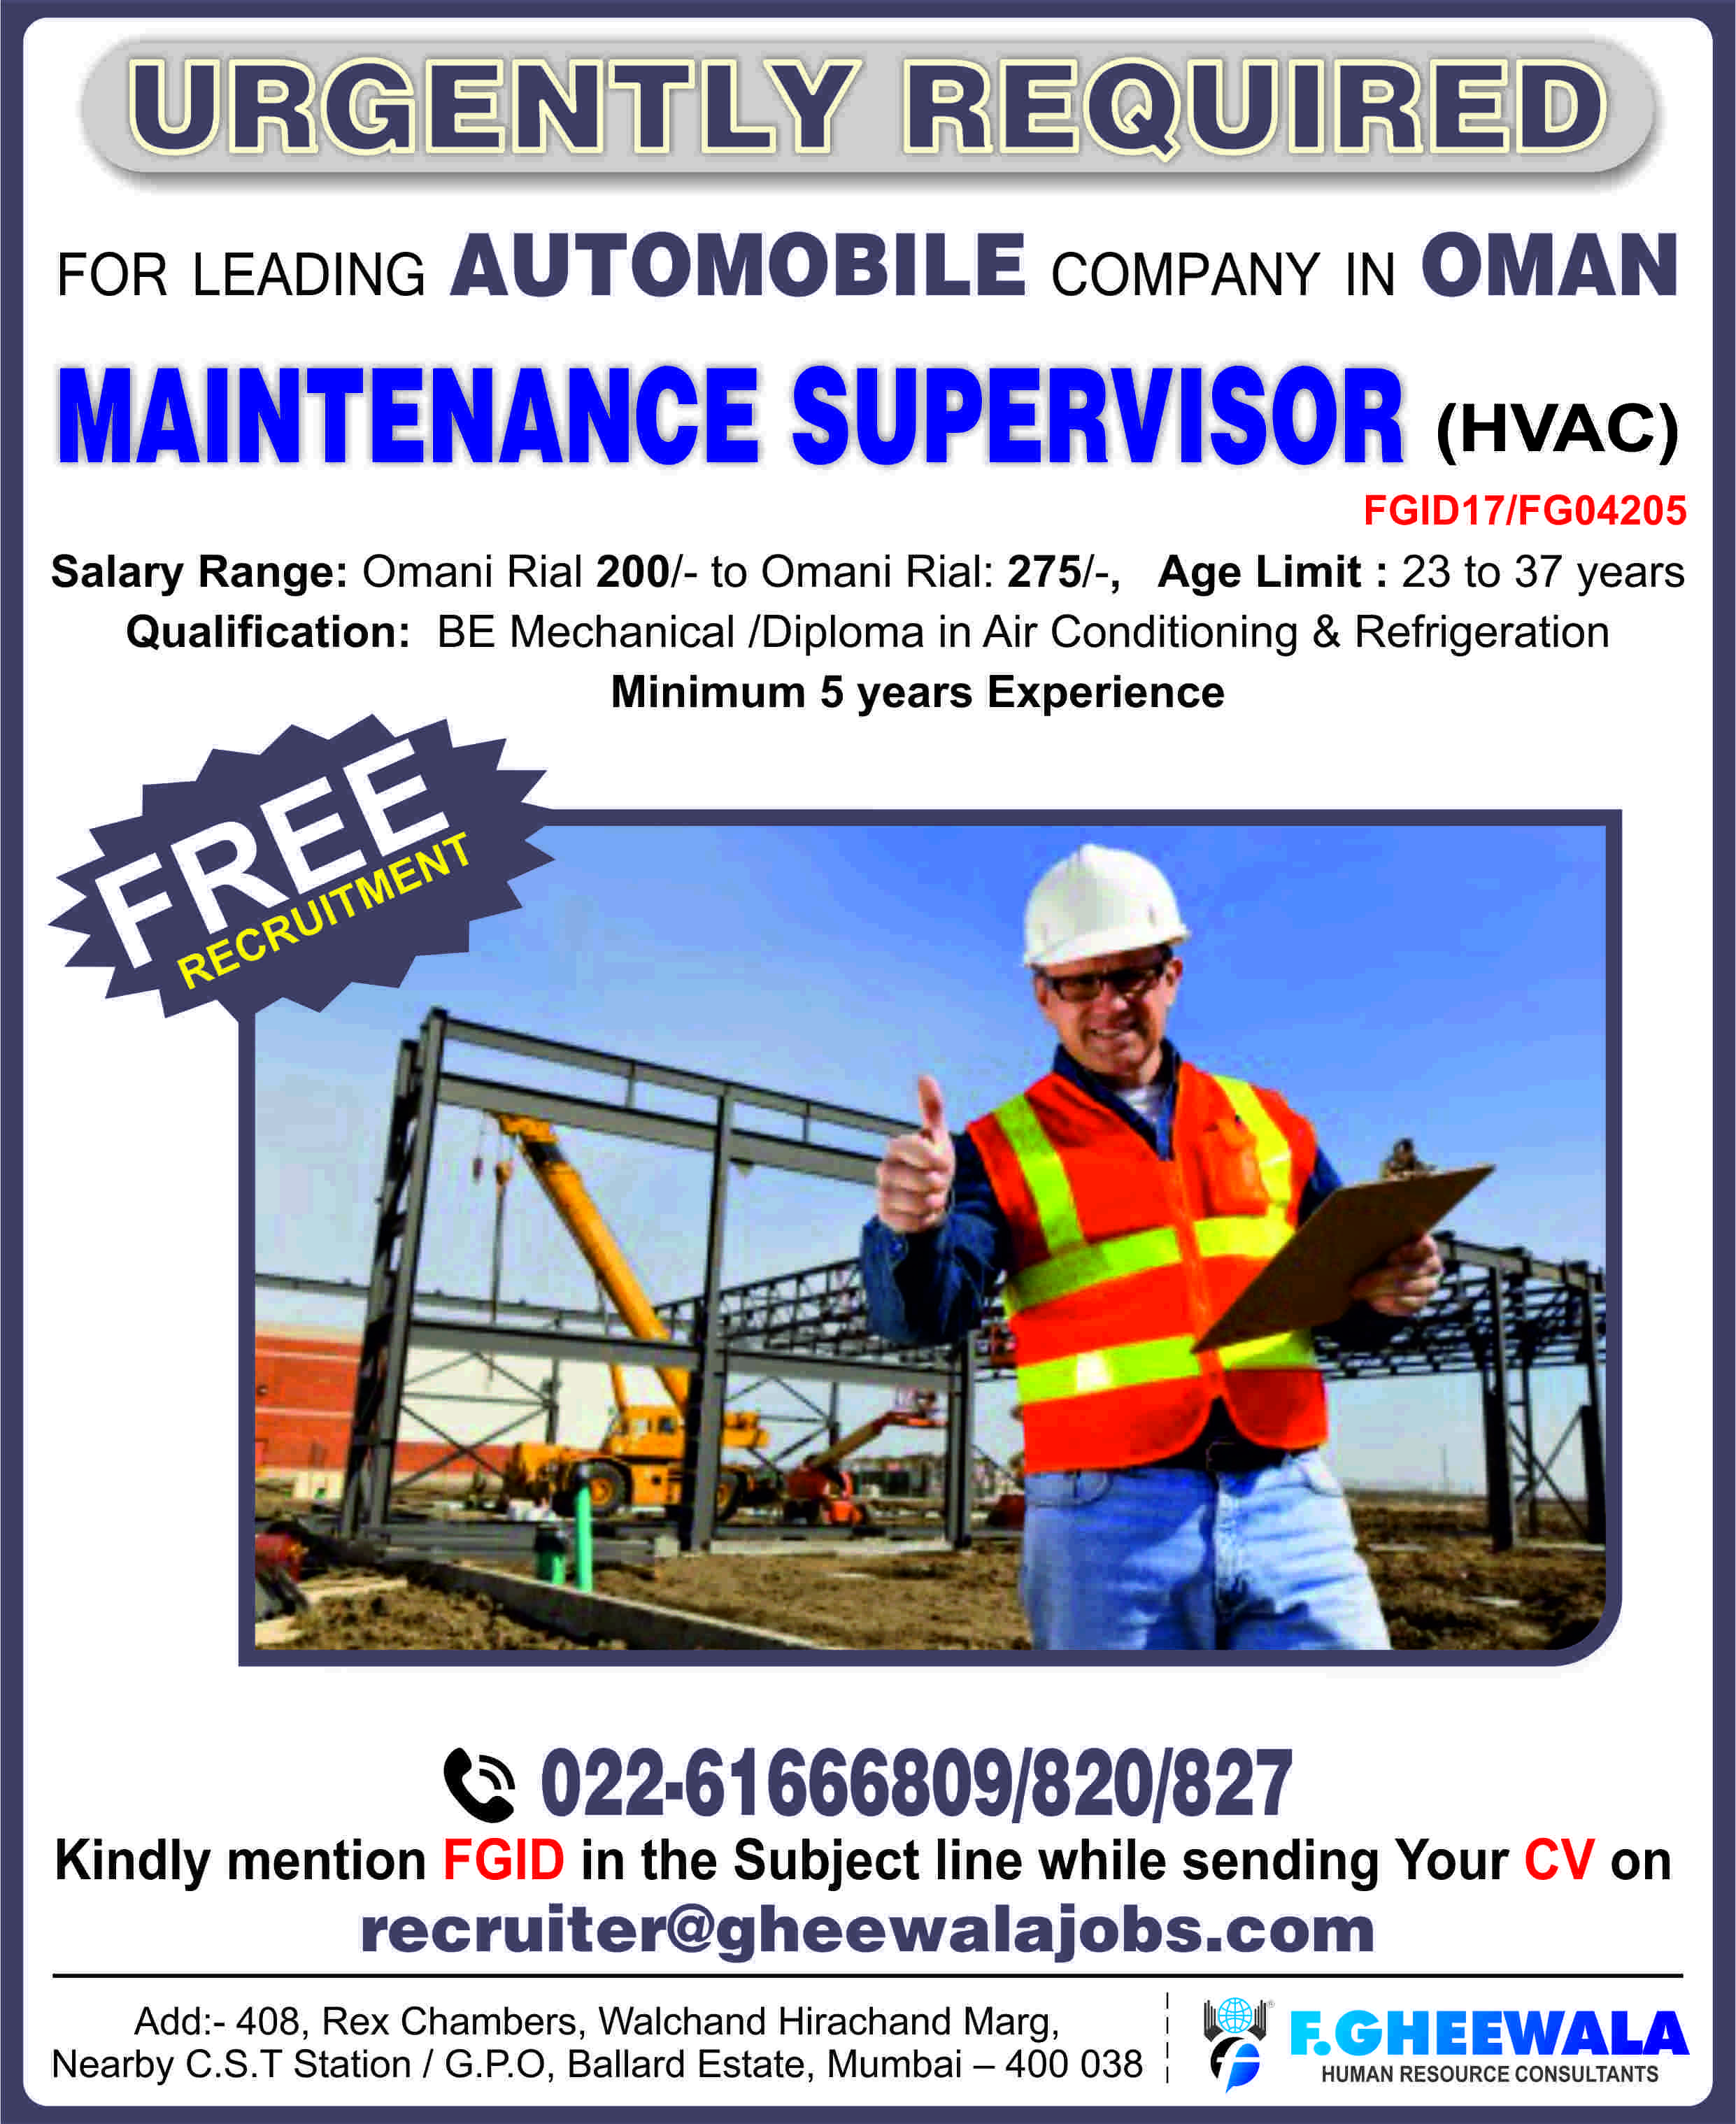 Urgently Required Maintenance Supervisor(HVAC) for Leading